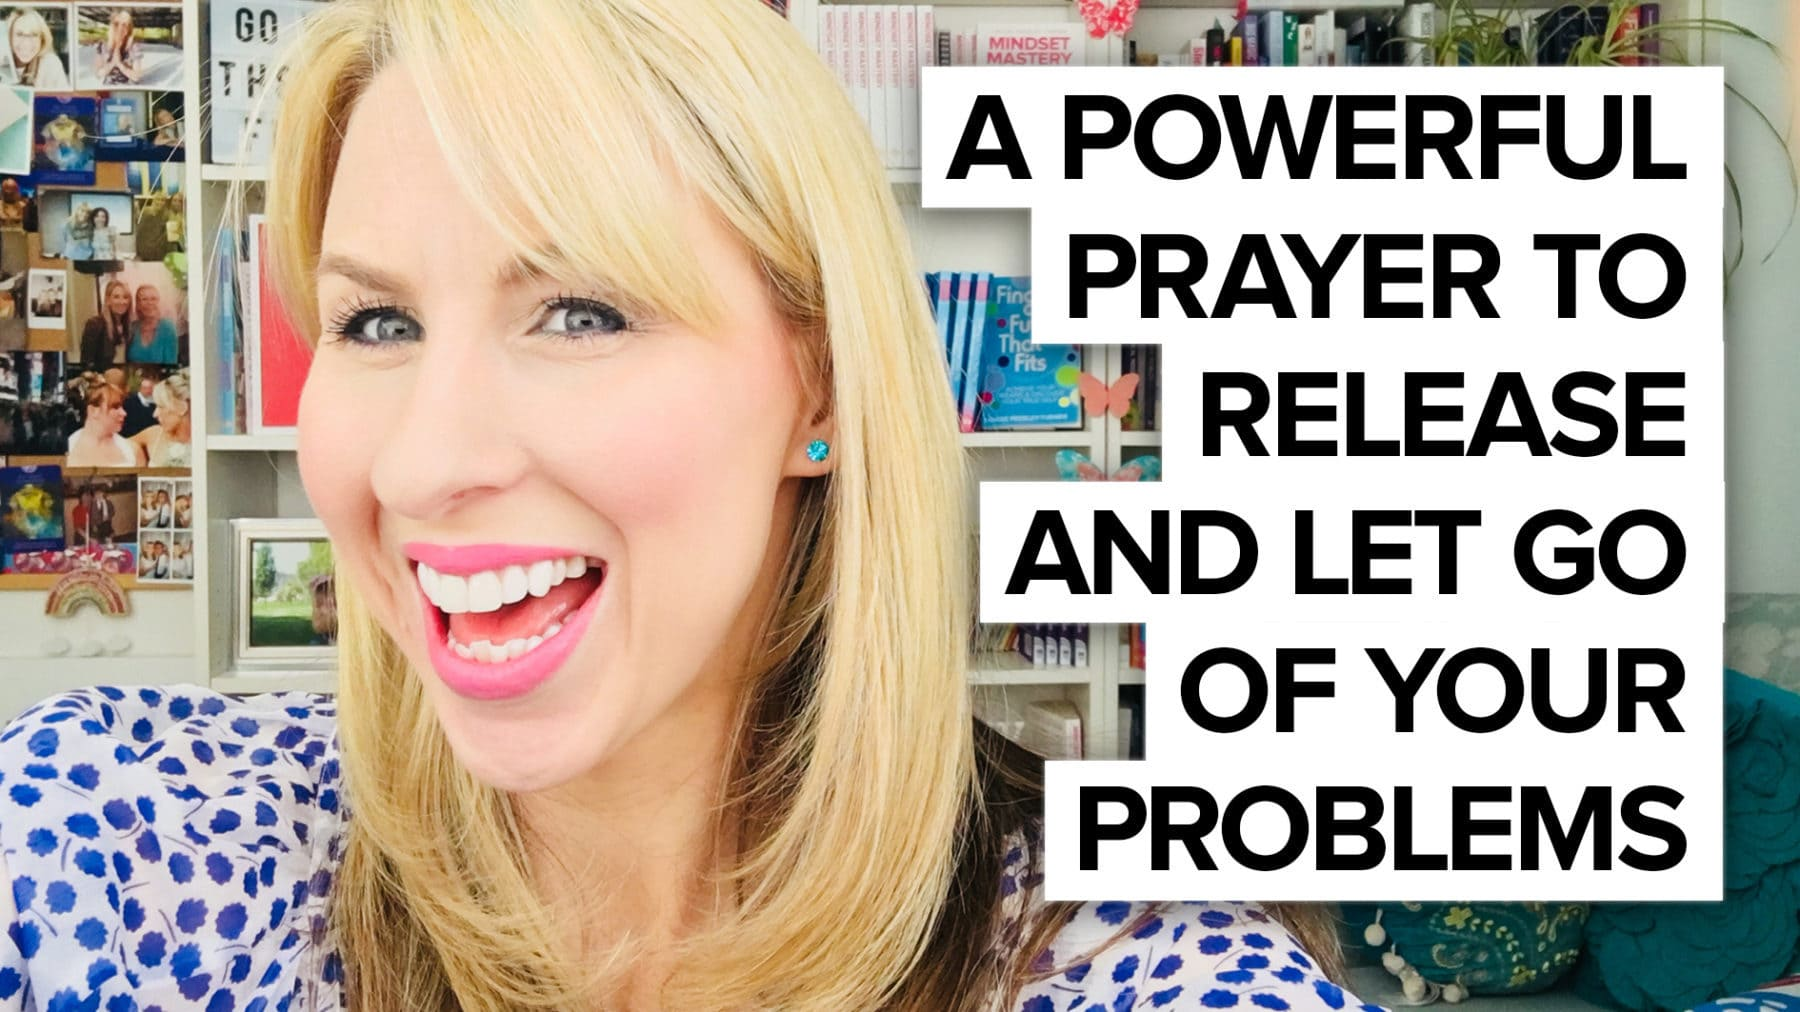 Powerful prayer to release & let go!